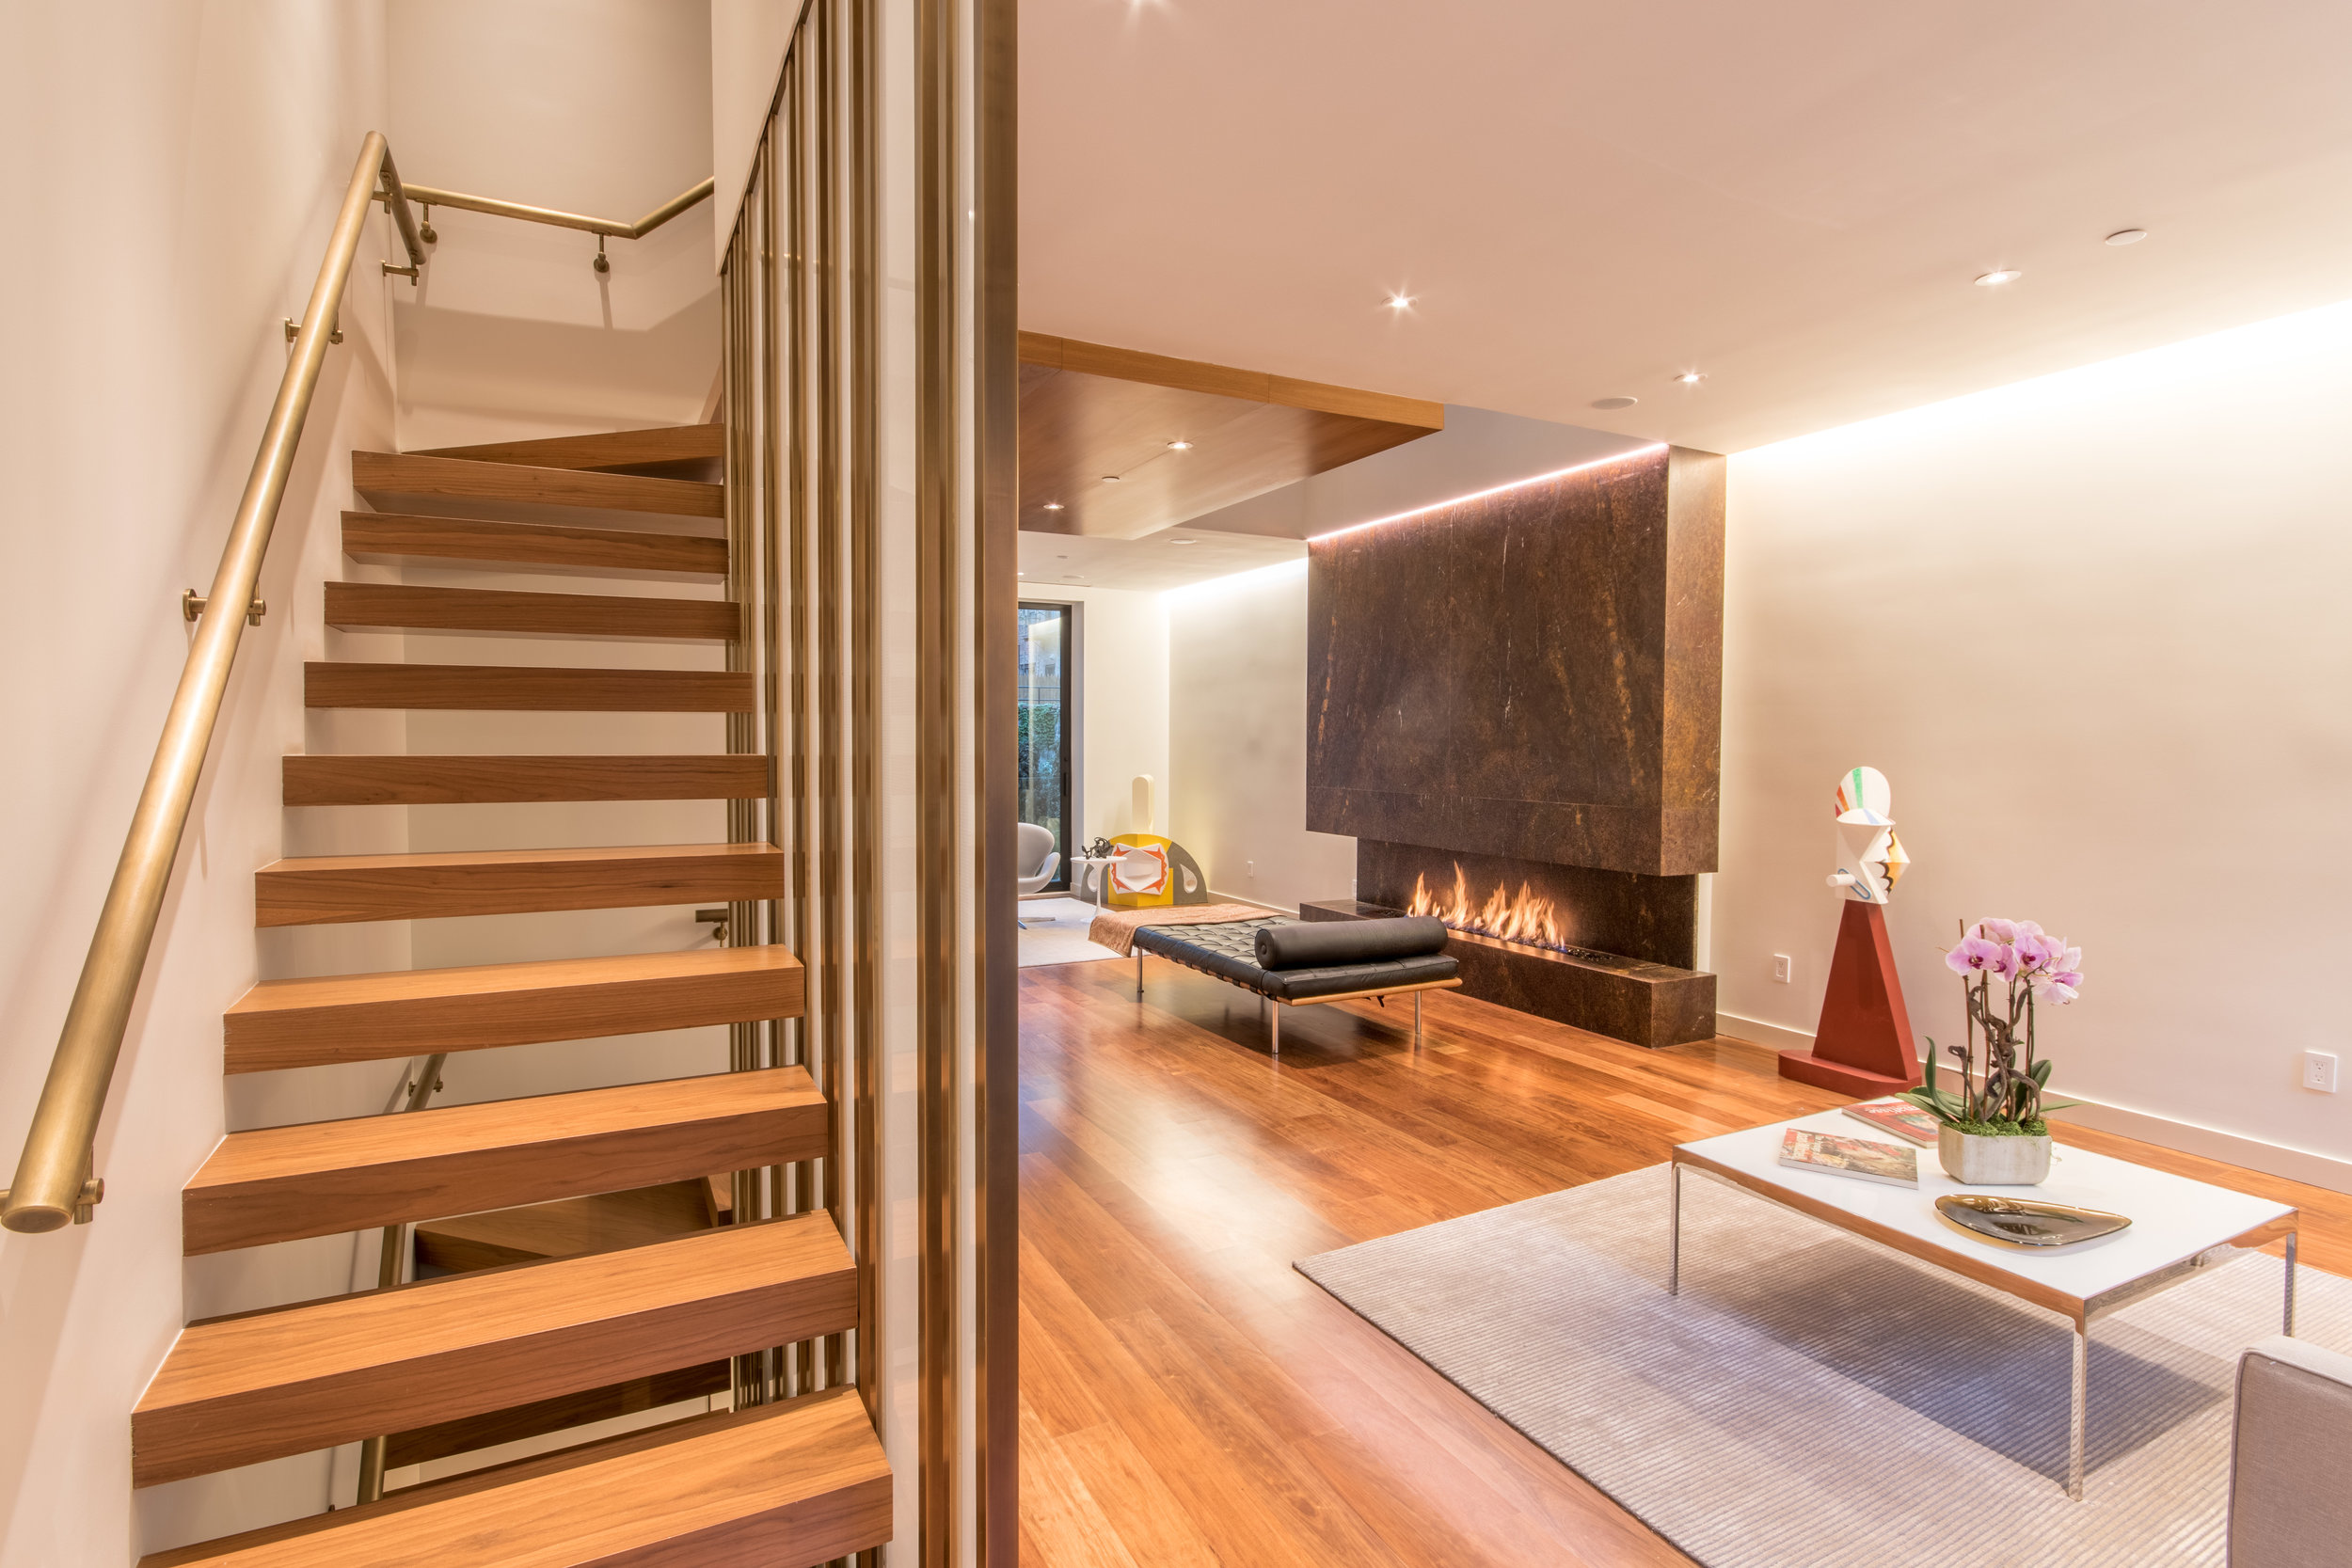 251 East 61st Street - A renovated townhouse completed in 2018